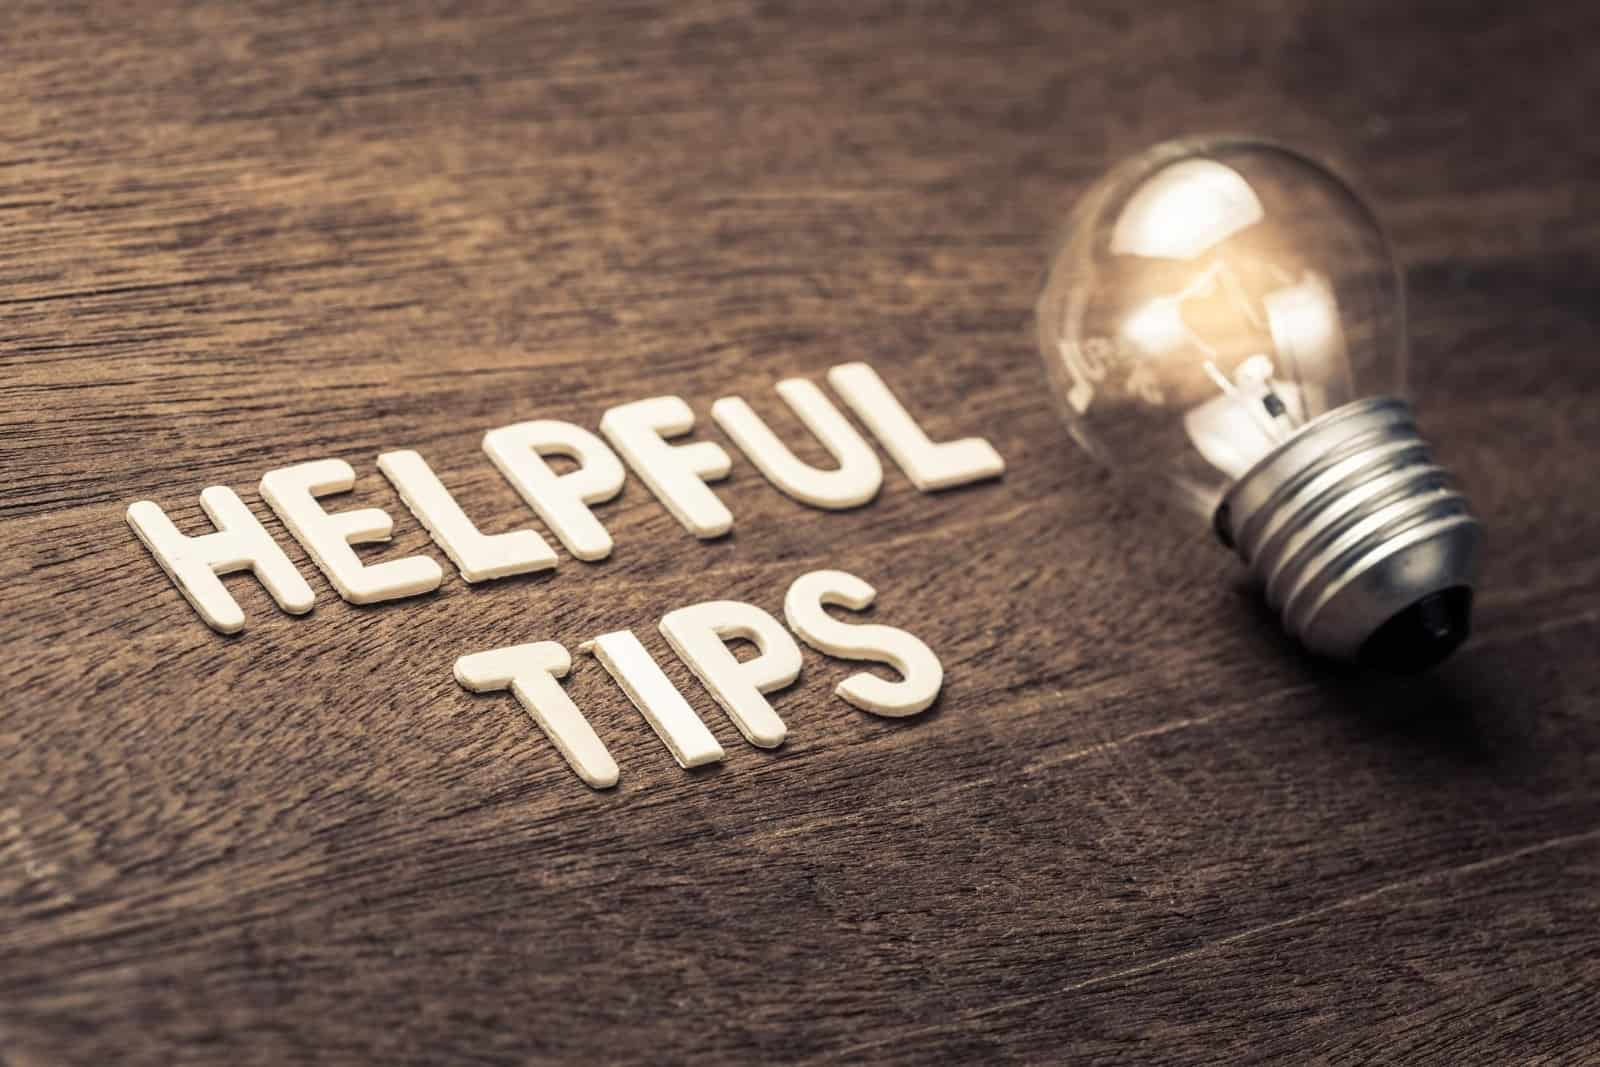 Helpful tips spelled out on a wooden surface with a lightbulb beside it